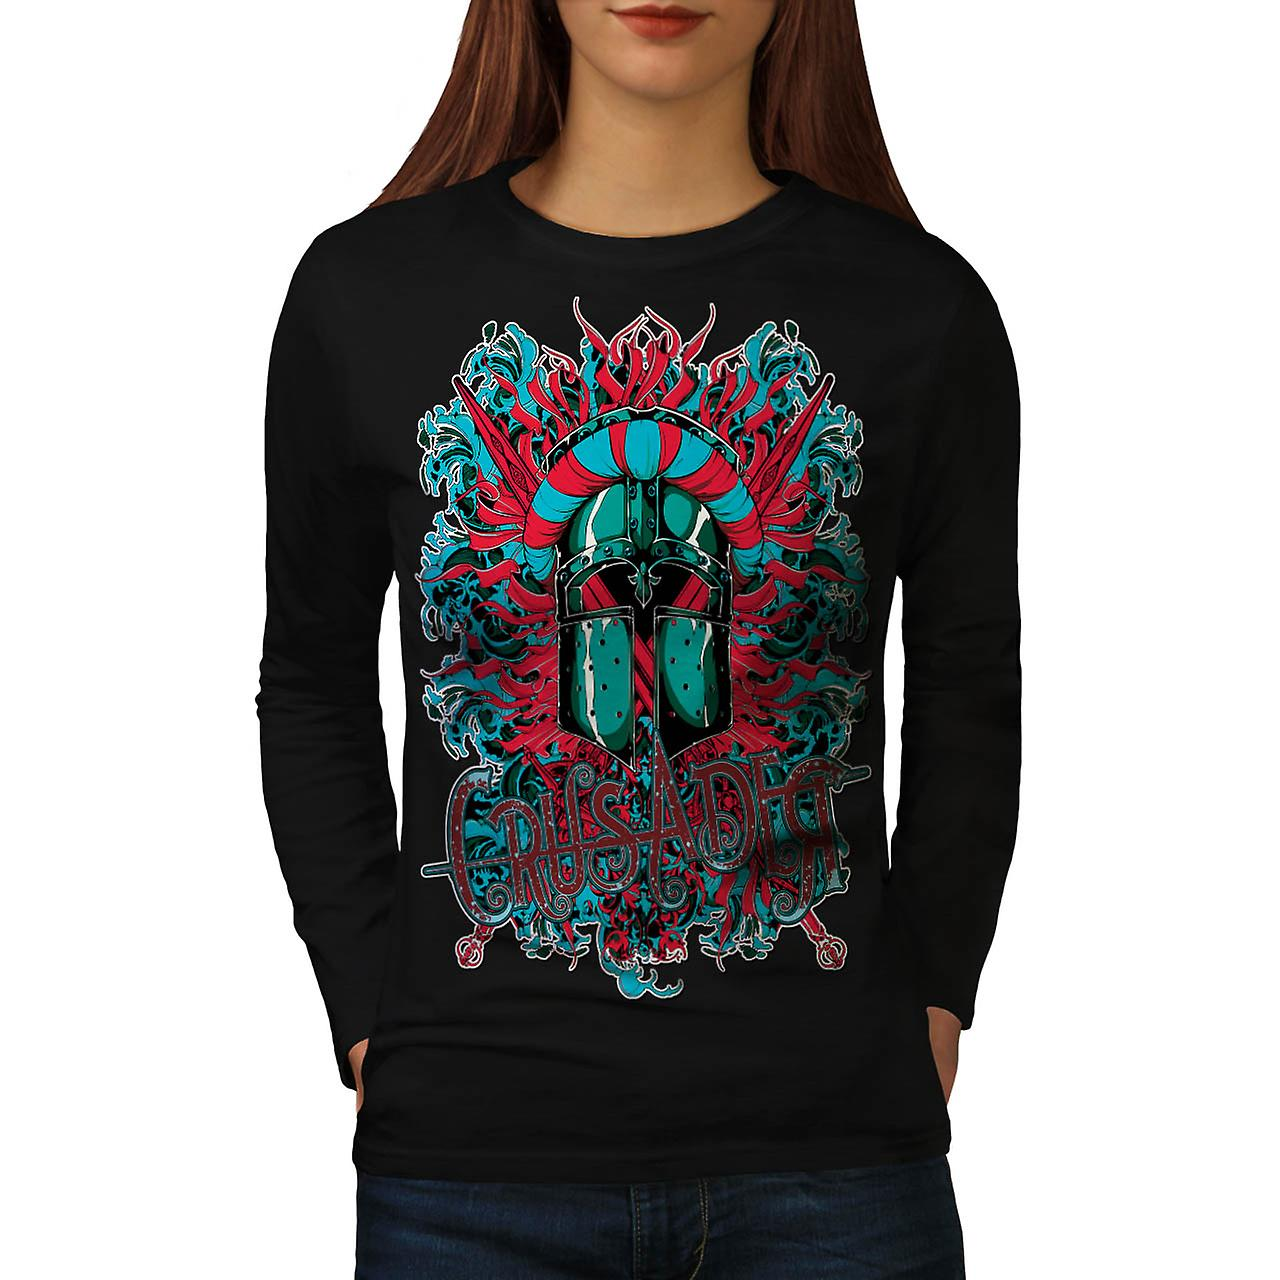 Crusader Knight Hero Darkness Women Black Long Sleeve T-shirt | Wellcoda